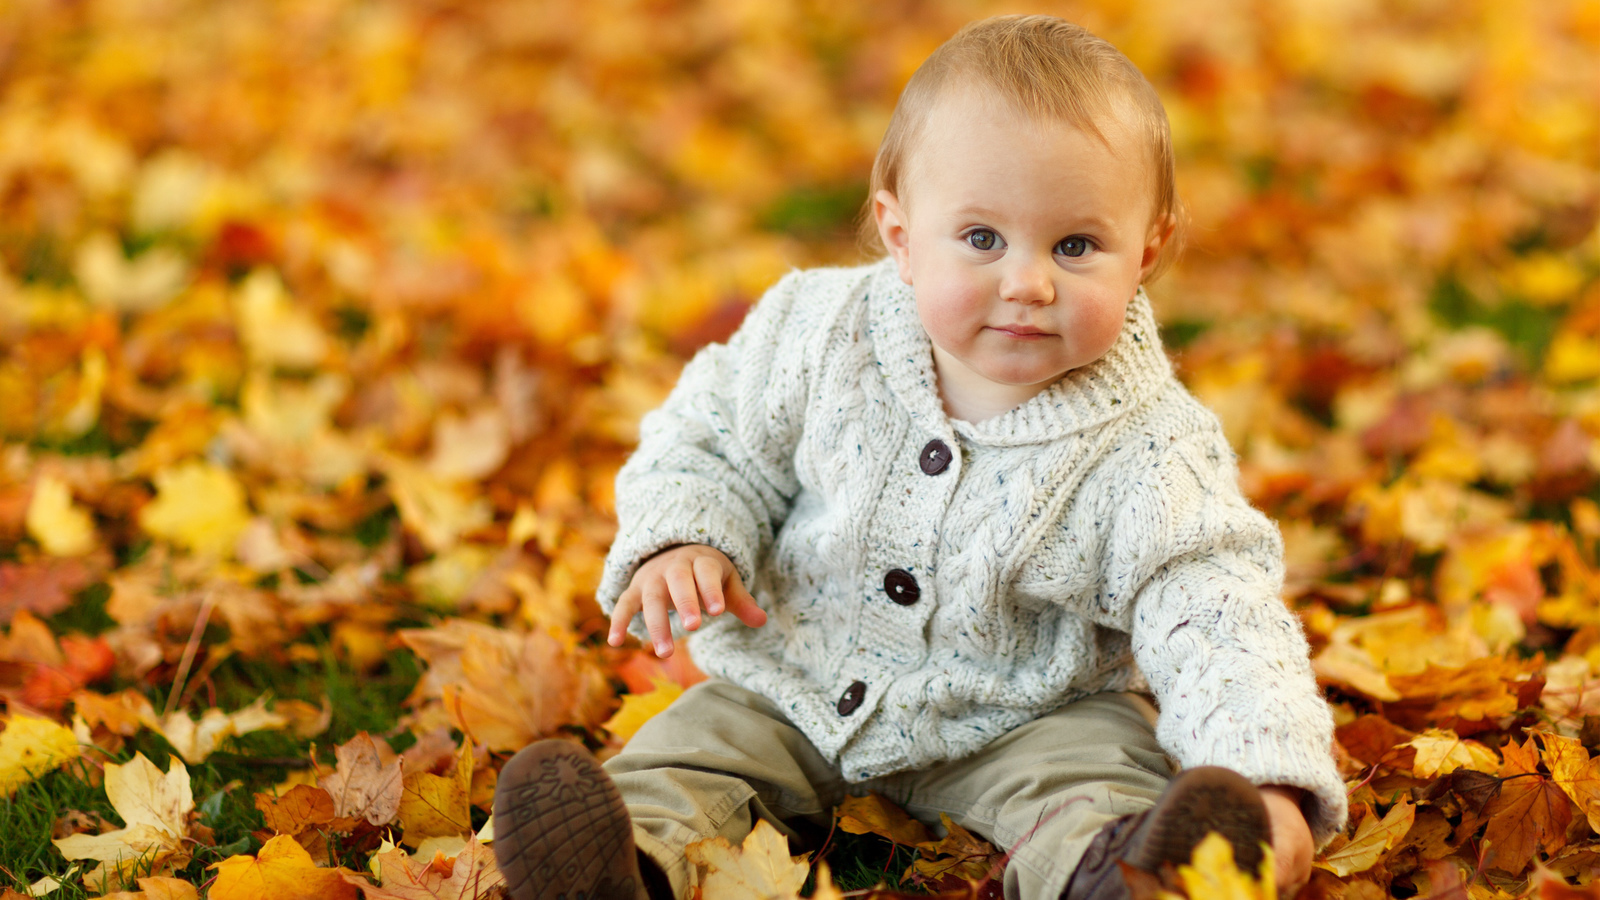 Cute Baby Boy Autumn Leaves (1600x900)